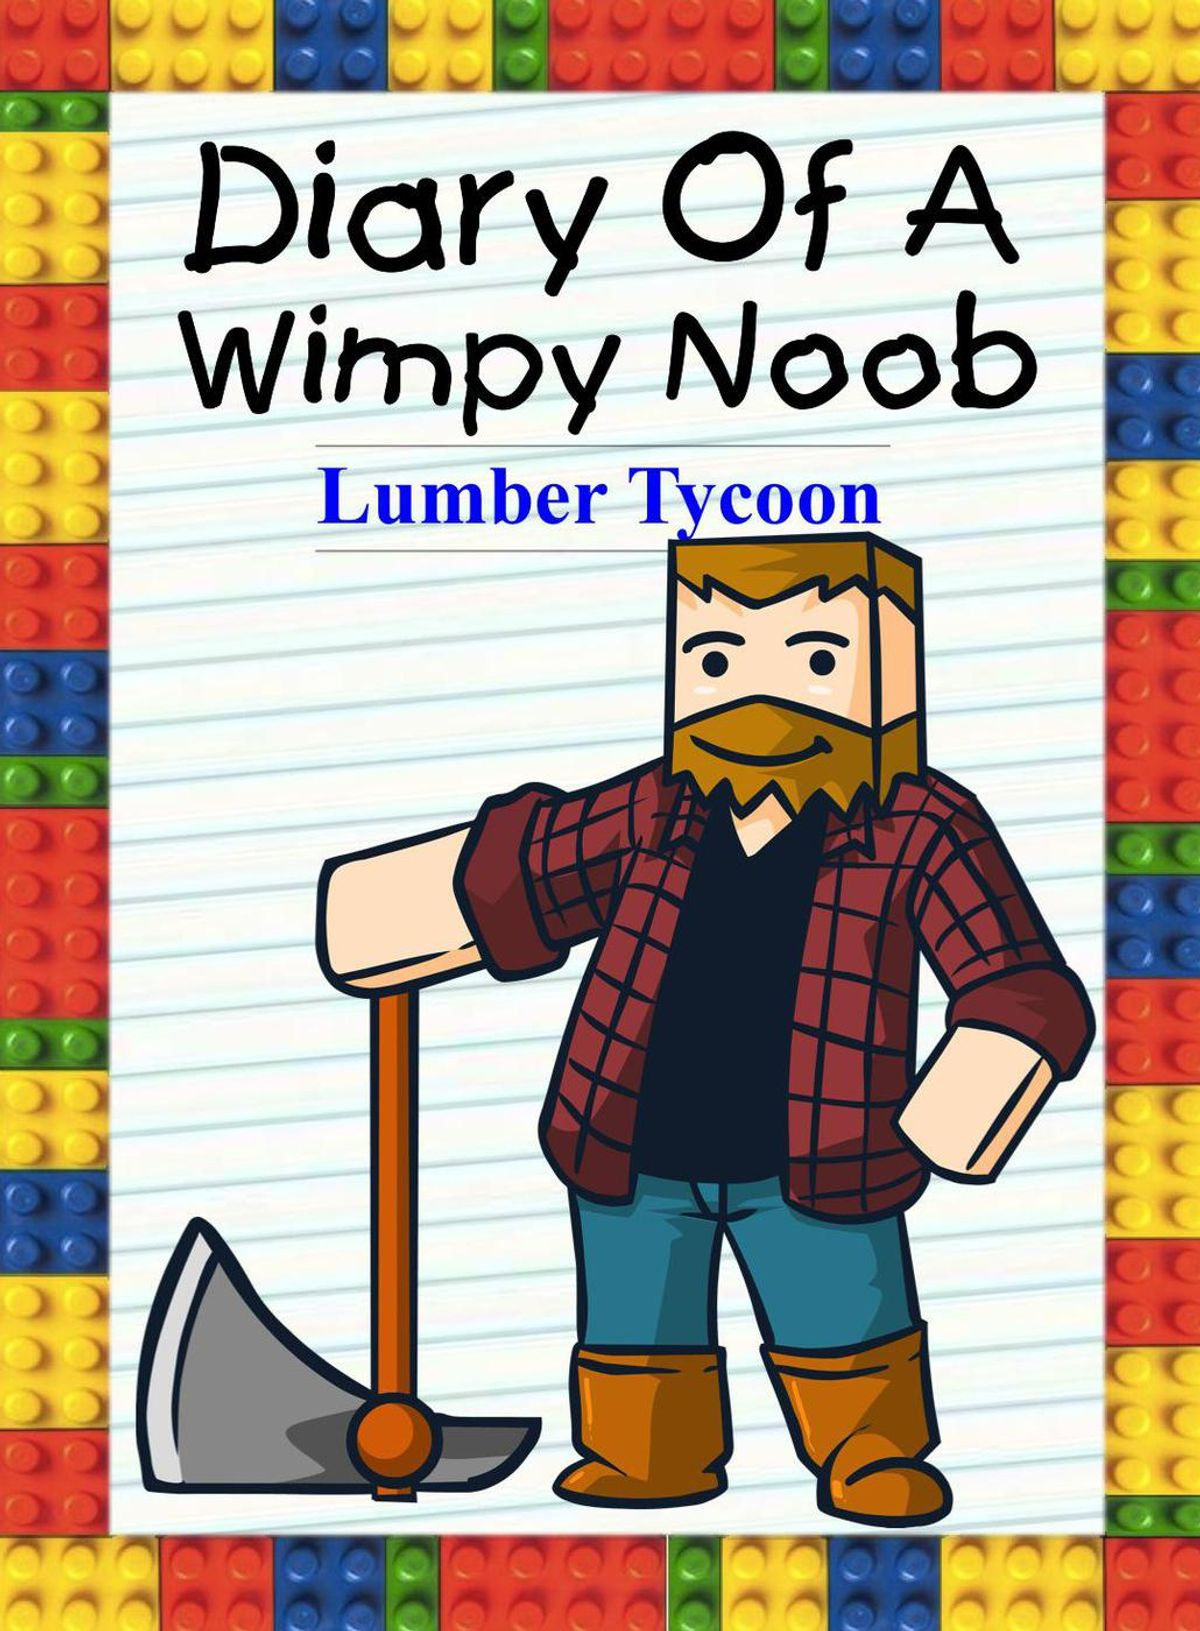 Diary Of A Wimpy Noob Lumber Tycoon Ebook Walmart Com